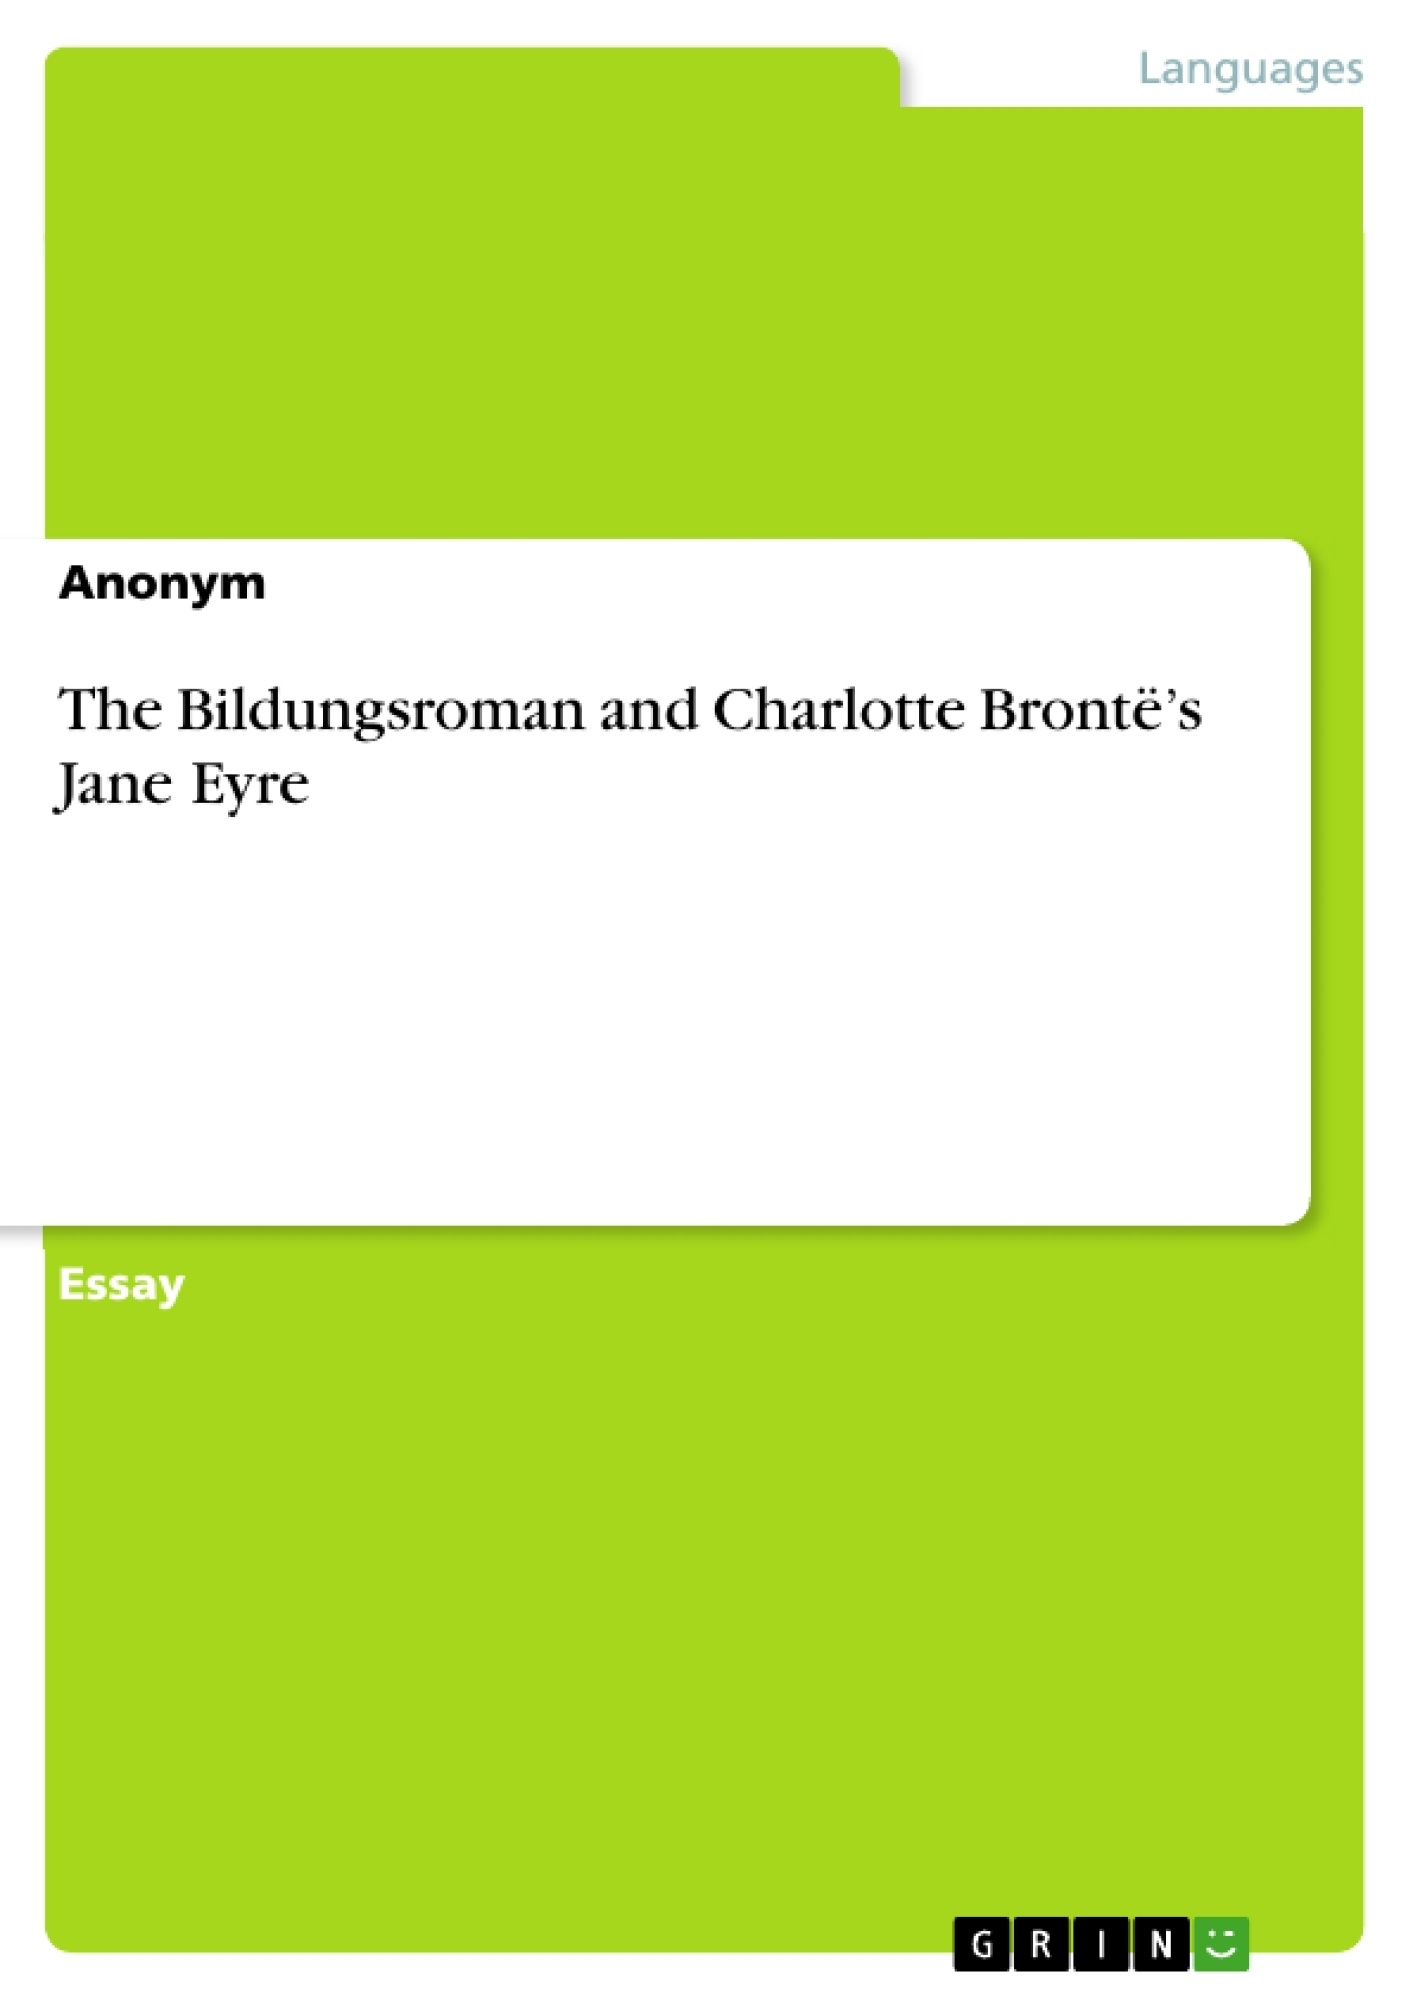 the bildungsr and charlotte bront euml s jane eyre publish your the bildungsr and charlotte bronteuml s jane eyre publish your master s thesis bachelor s thesis essay or term paper